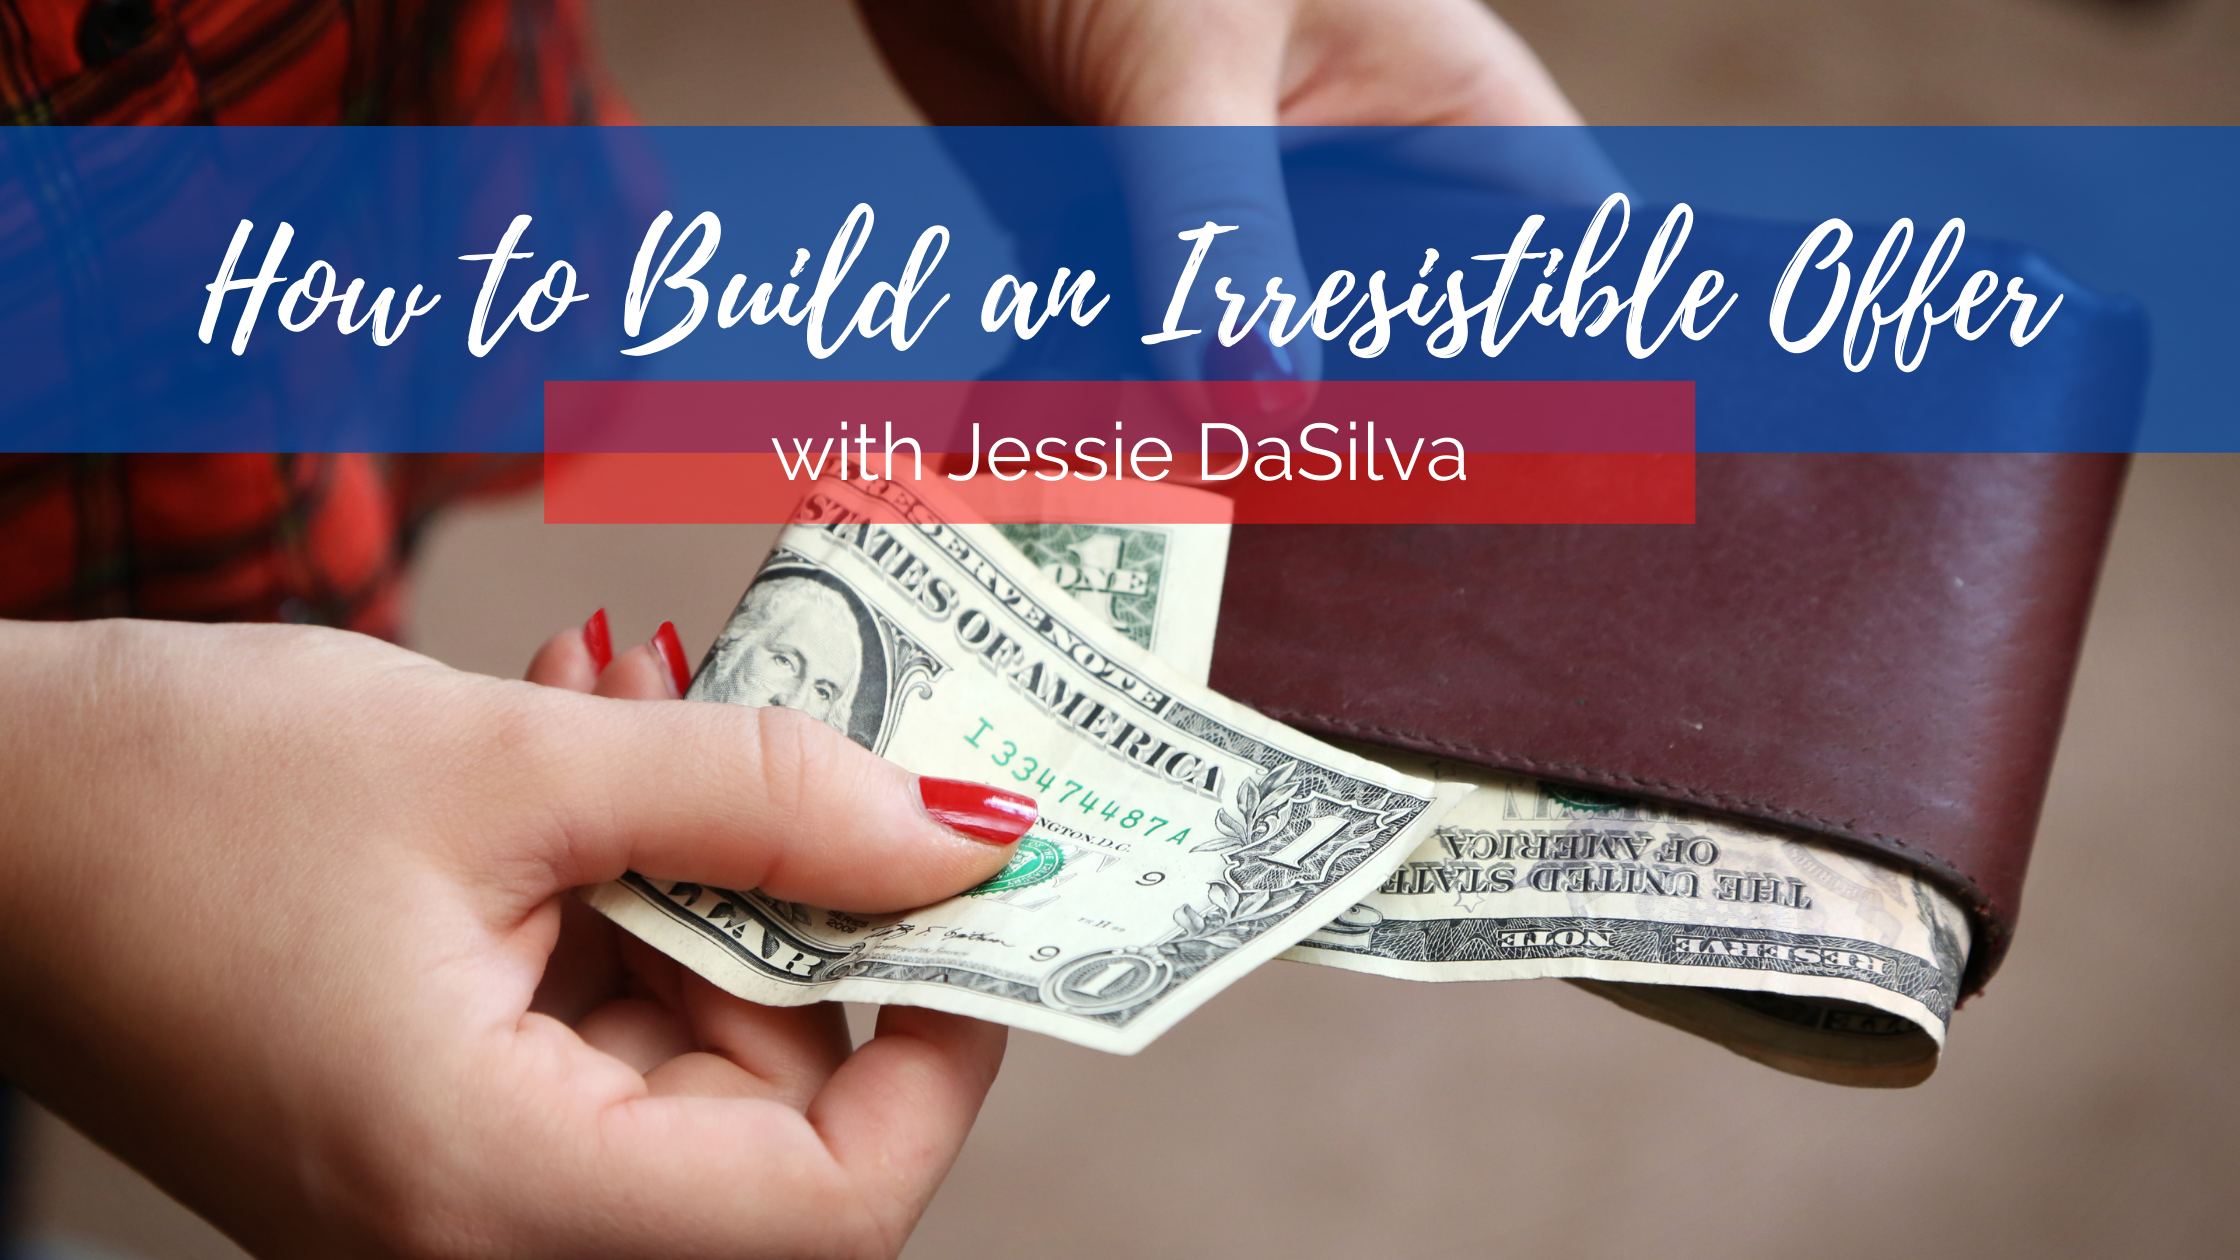 how to build an irresistible offer